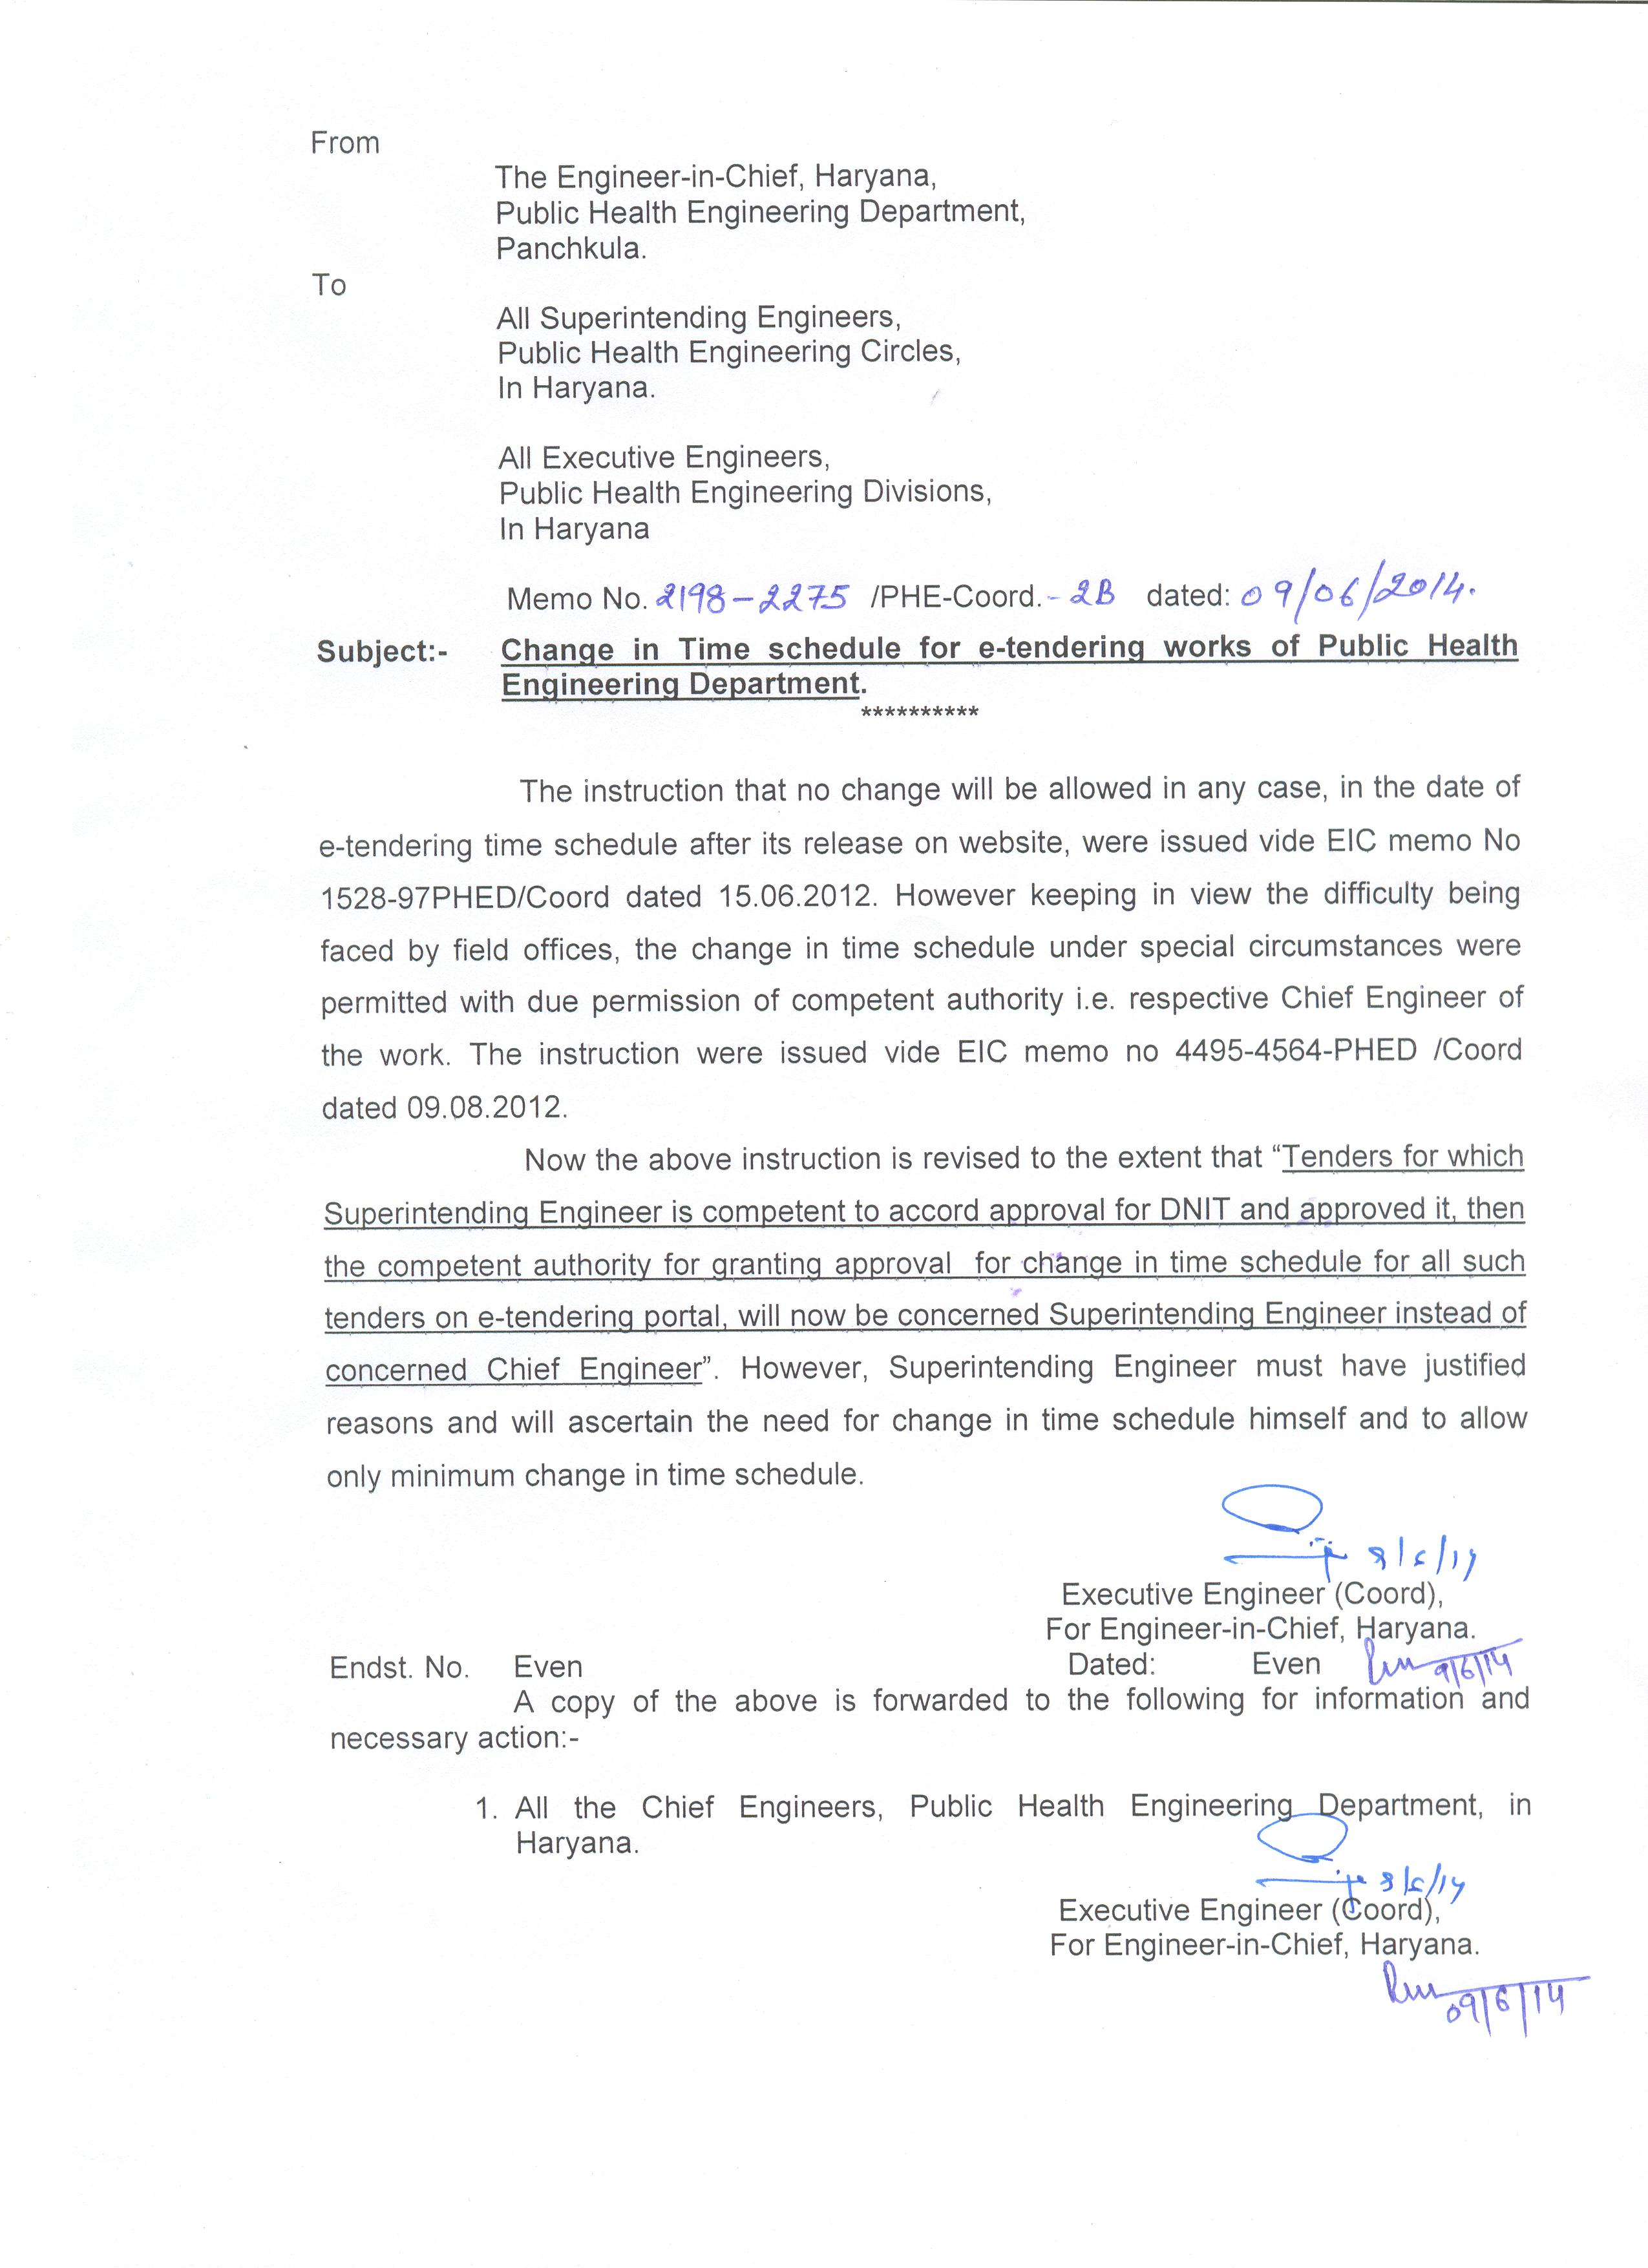 Public health engineering department haryana change in time schedule in e tendering works of public health engg deptt spiritdancerdesigns Image collections